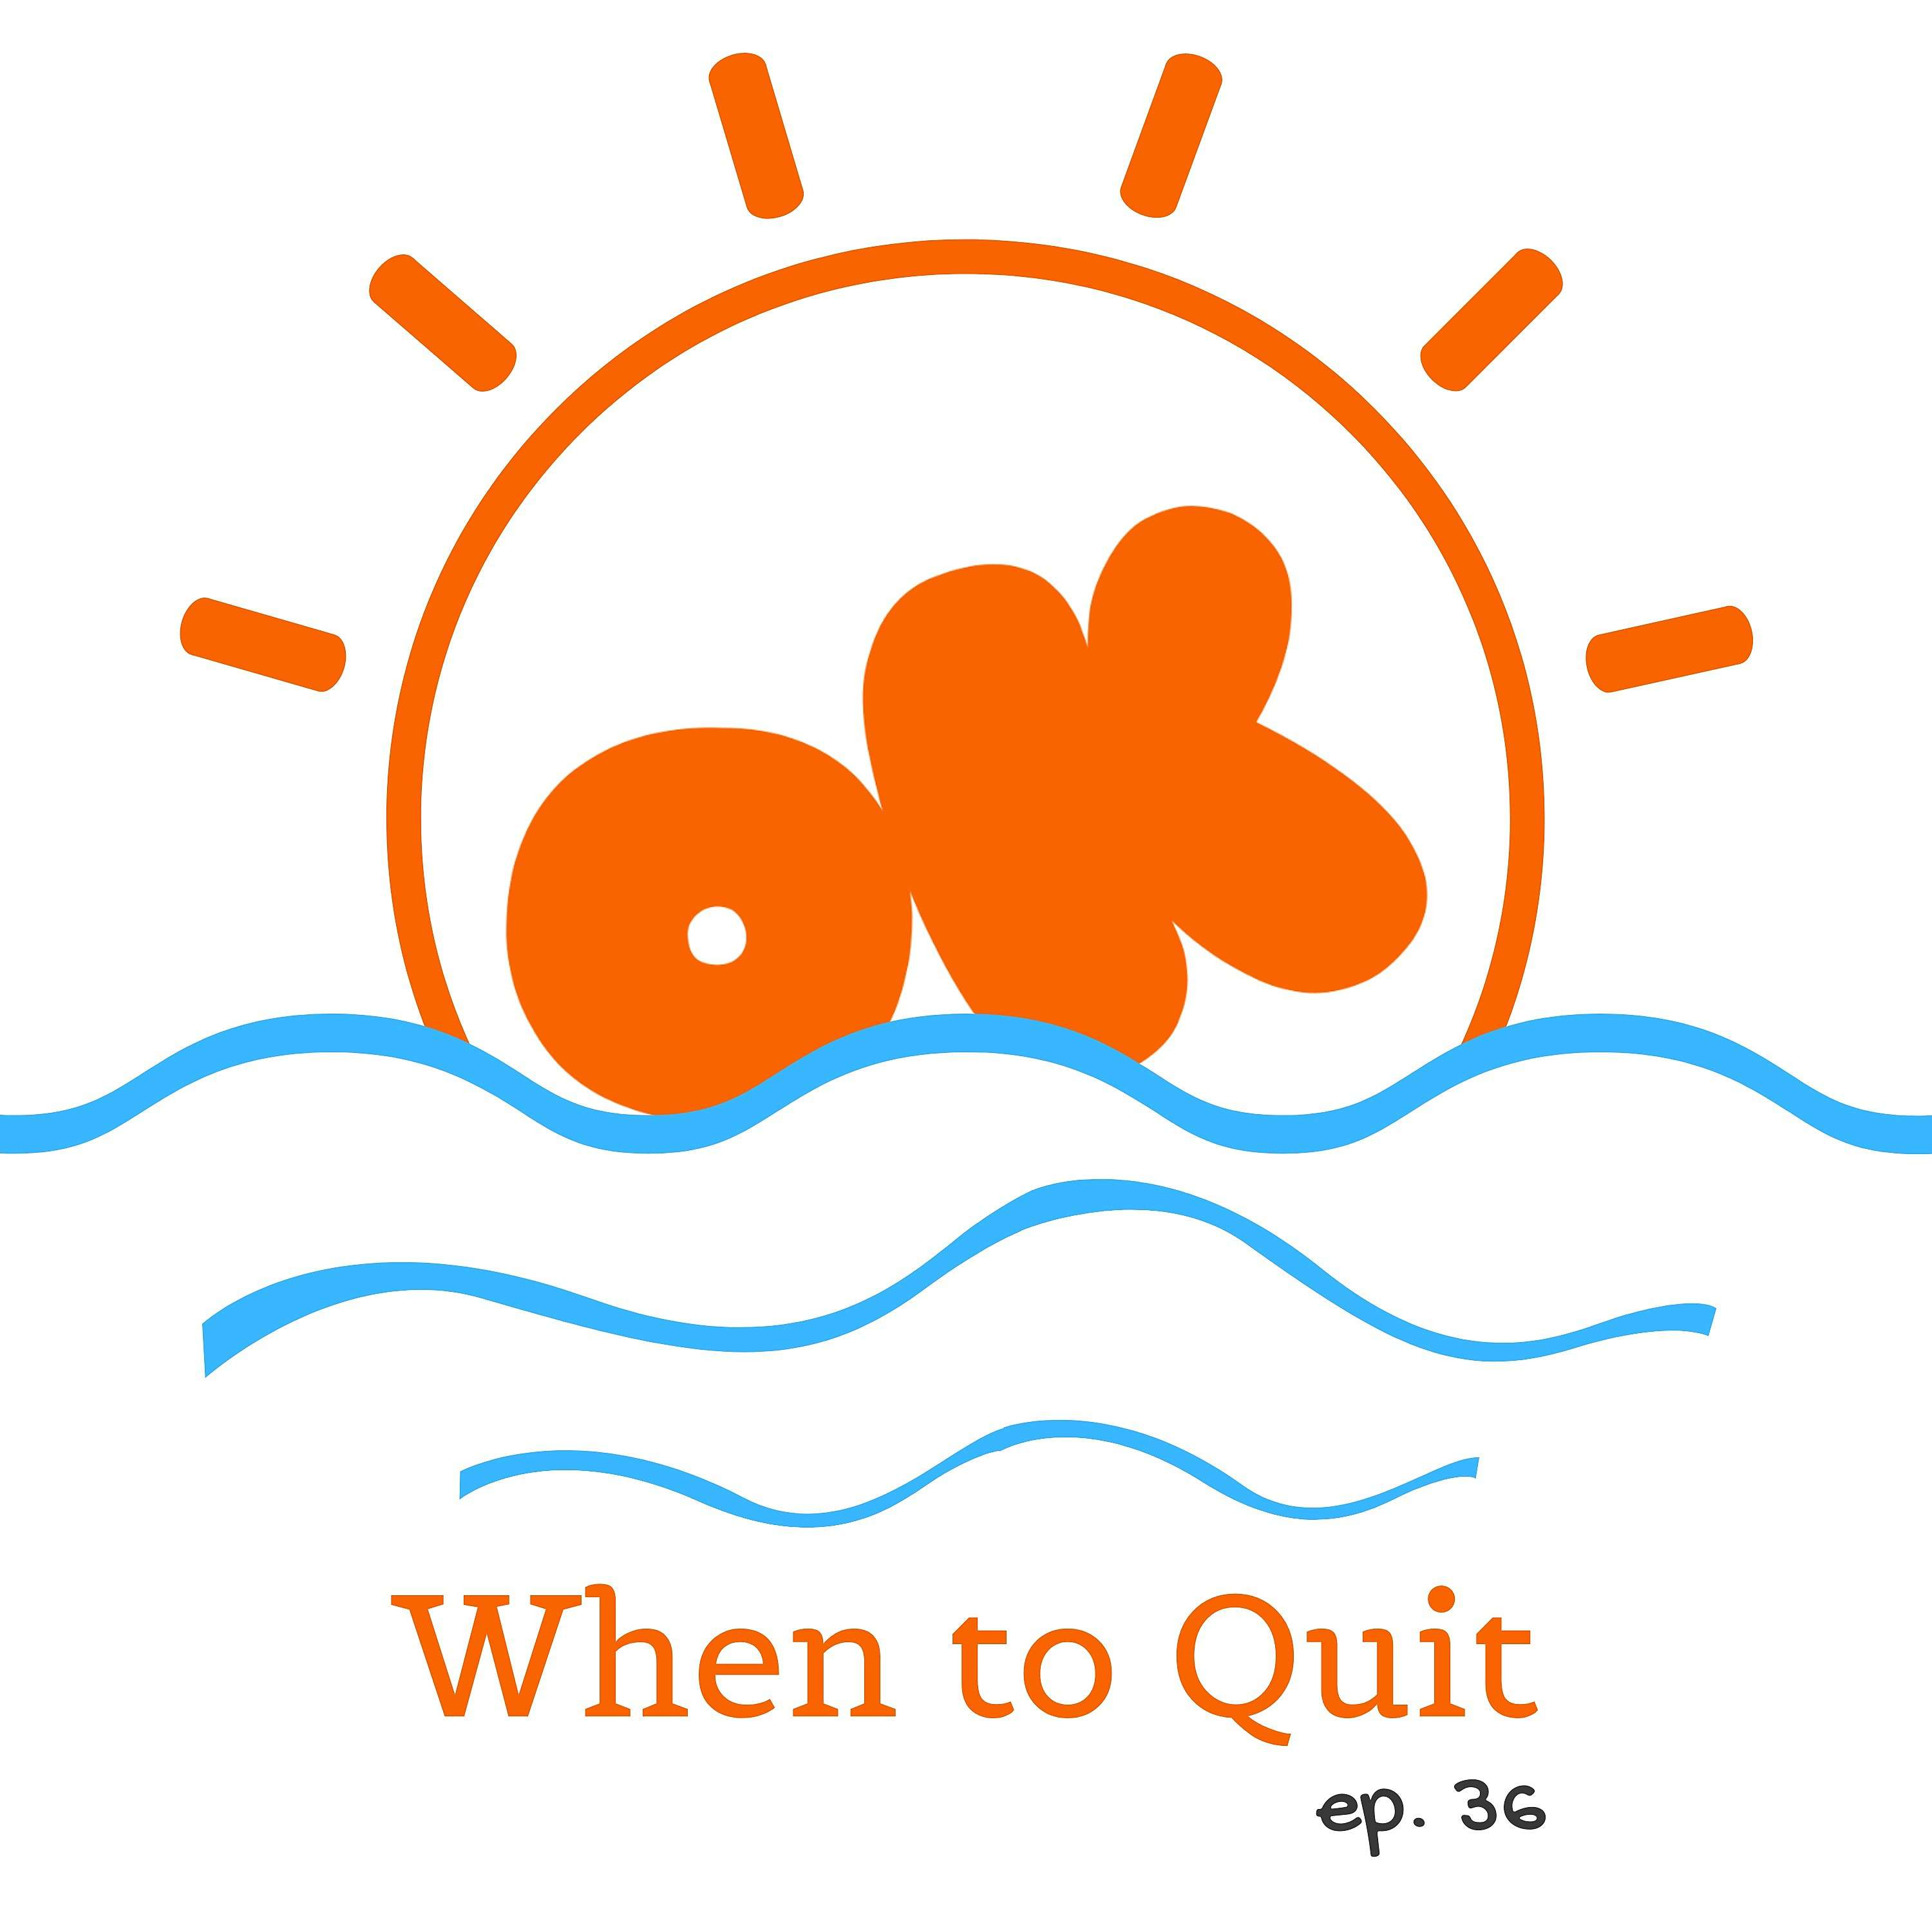 036. When to Quit